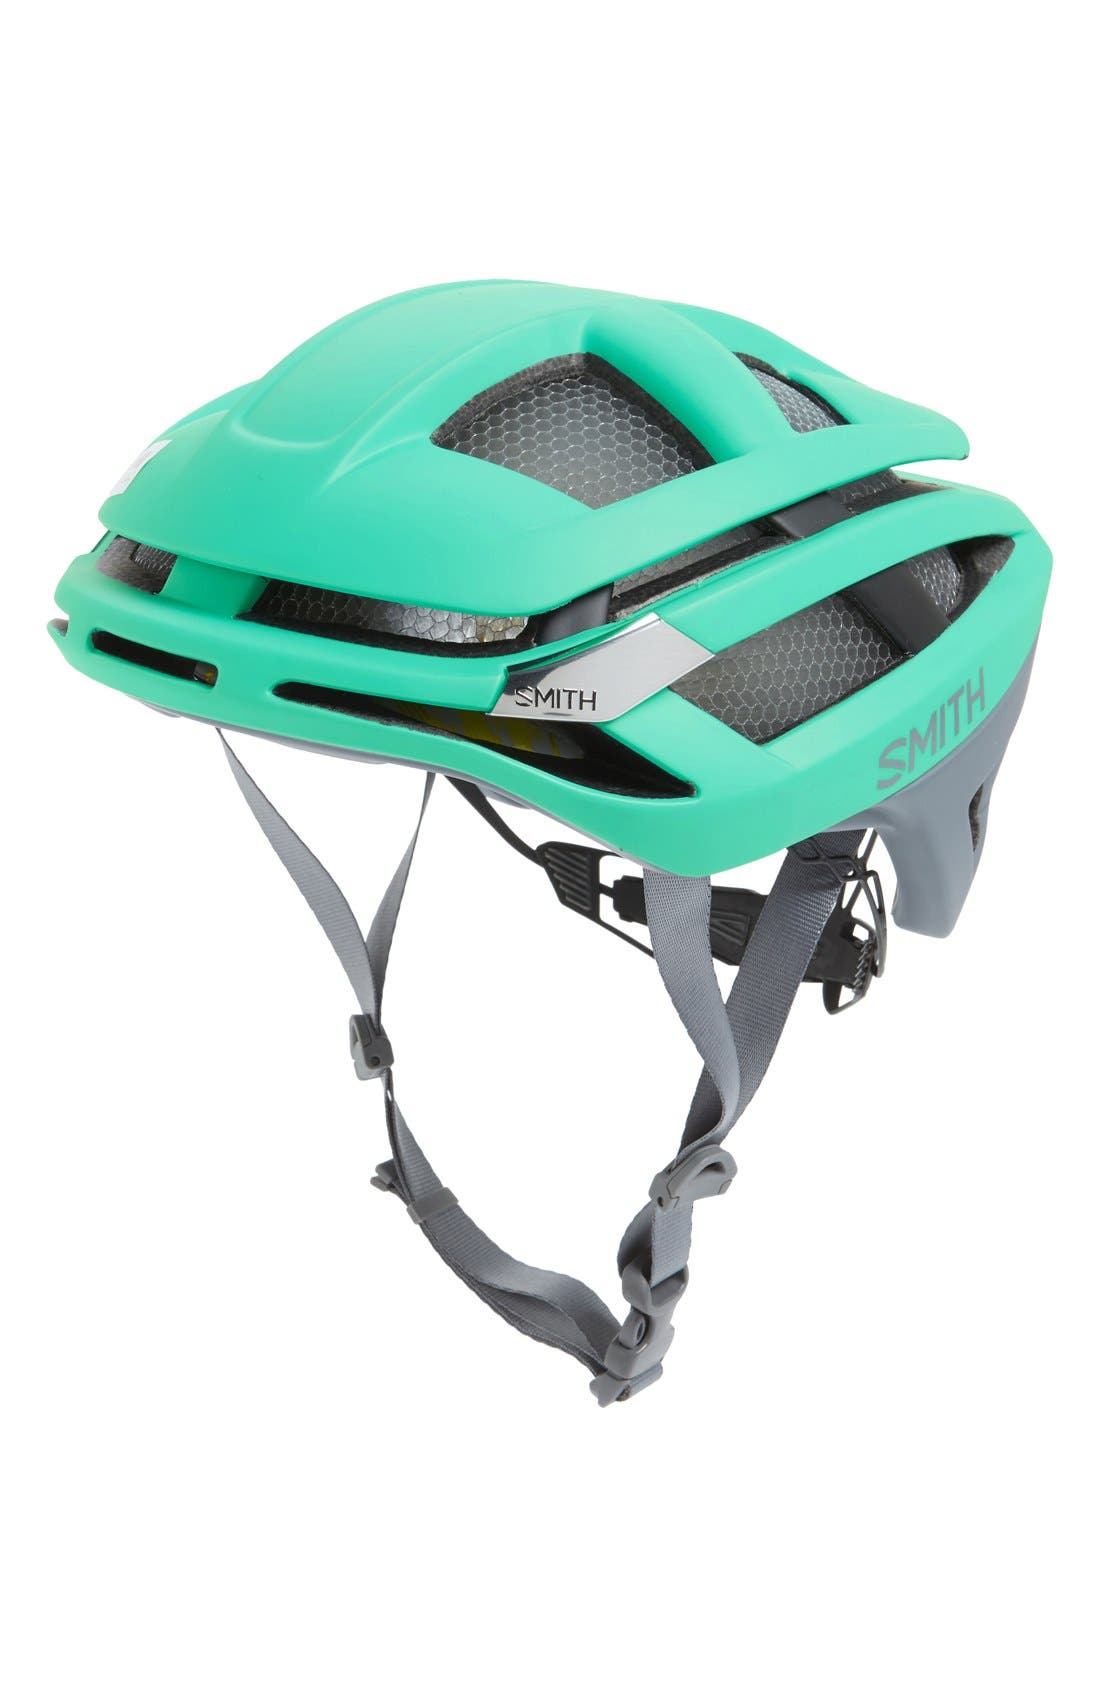 'Overtake with MIPS' Biking Racer Helmet,                             Main thumbnail 1, color,                             MATTE OPAL/ CHARCOAL